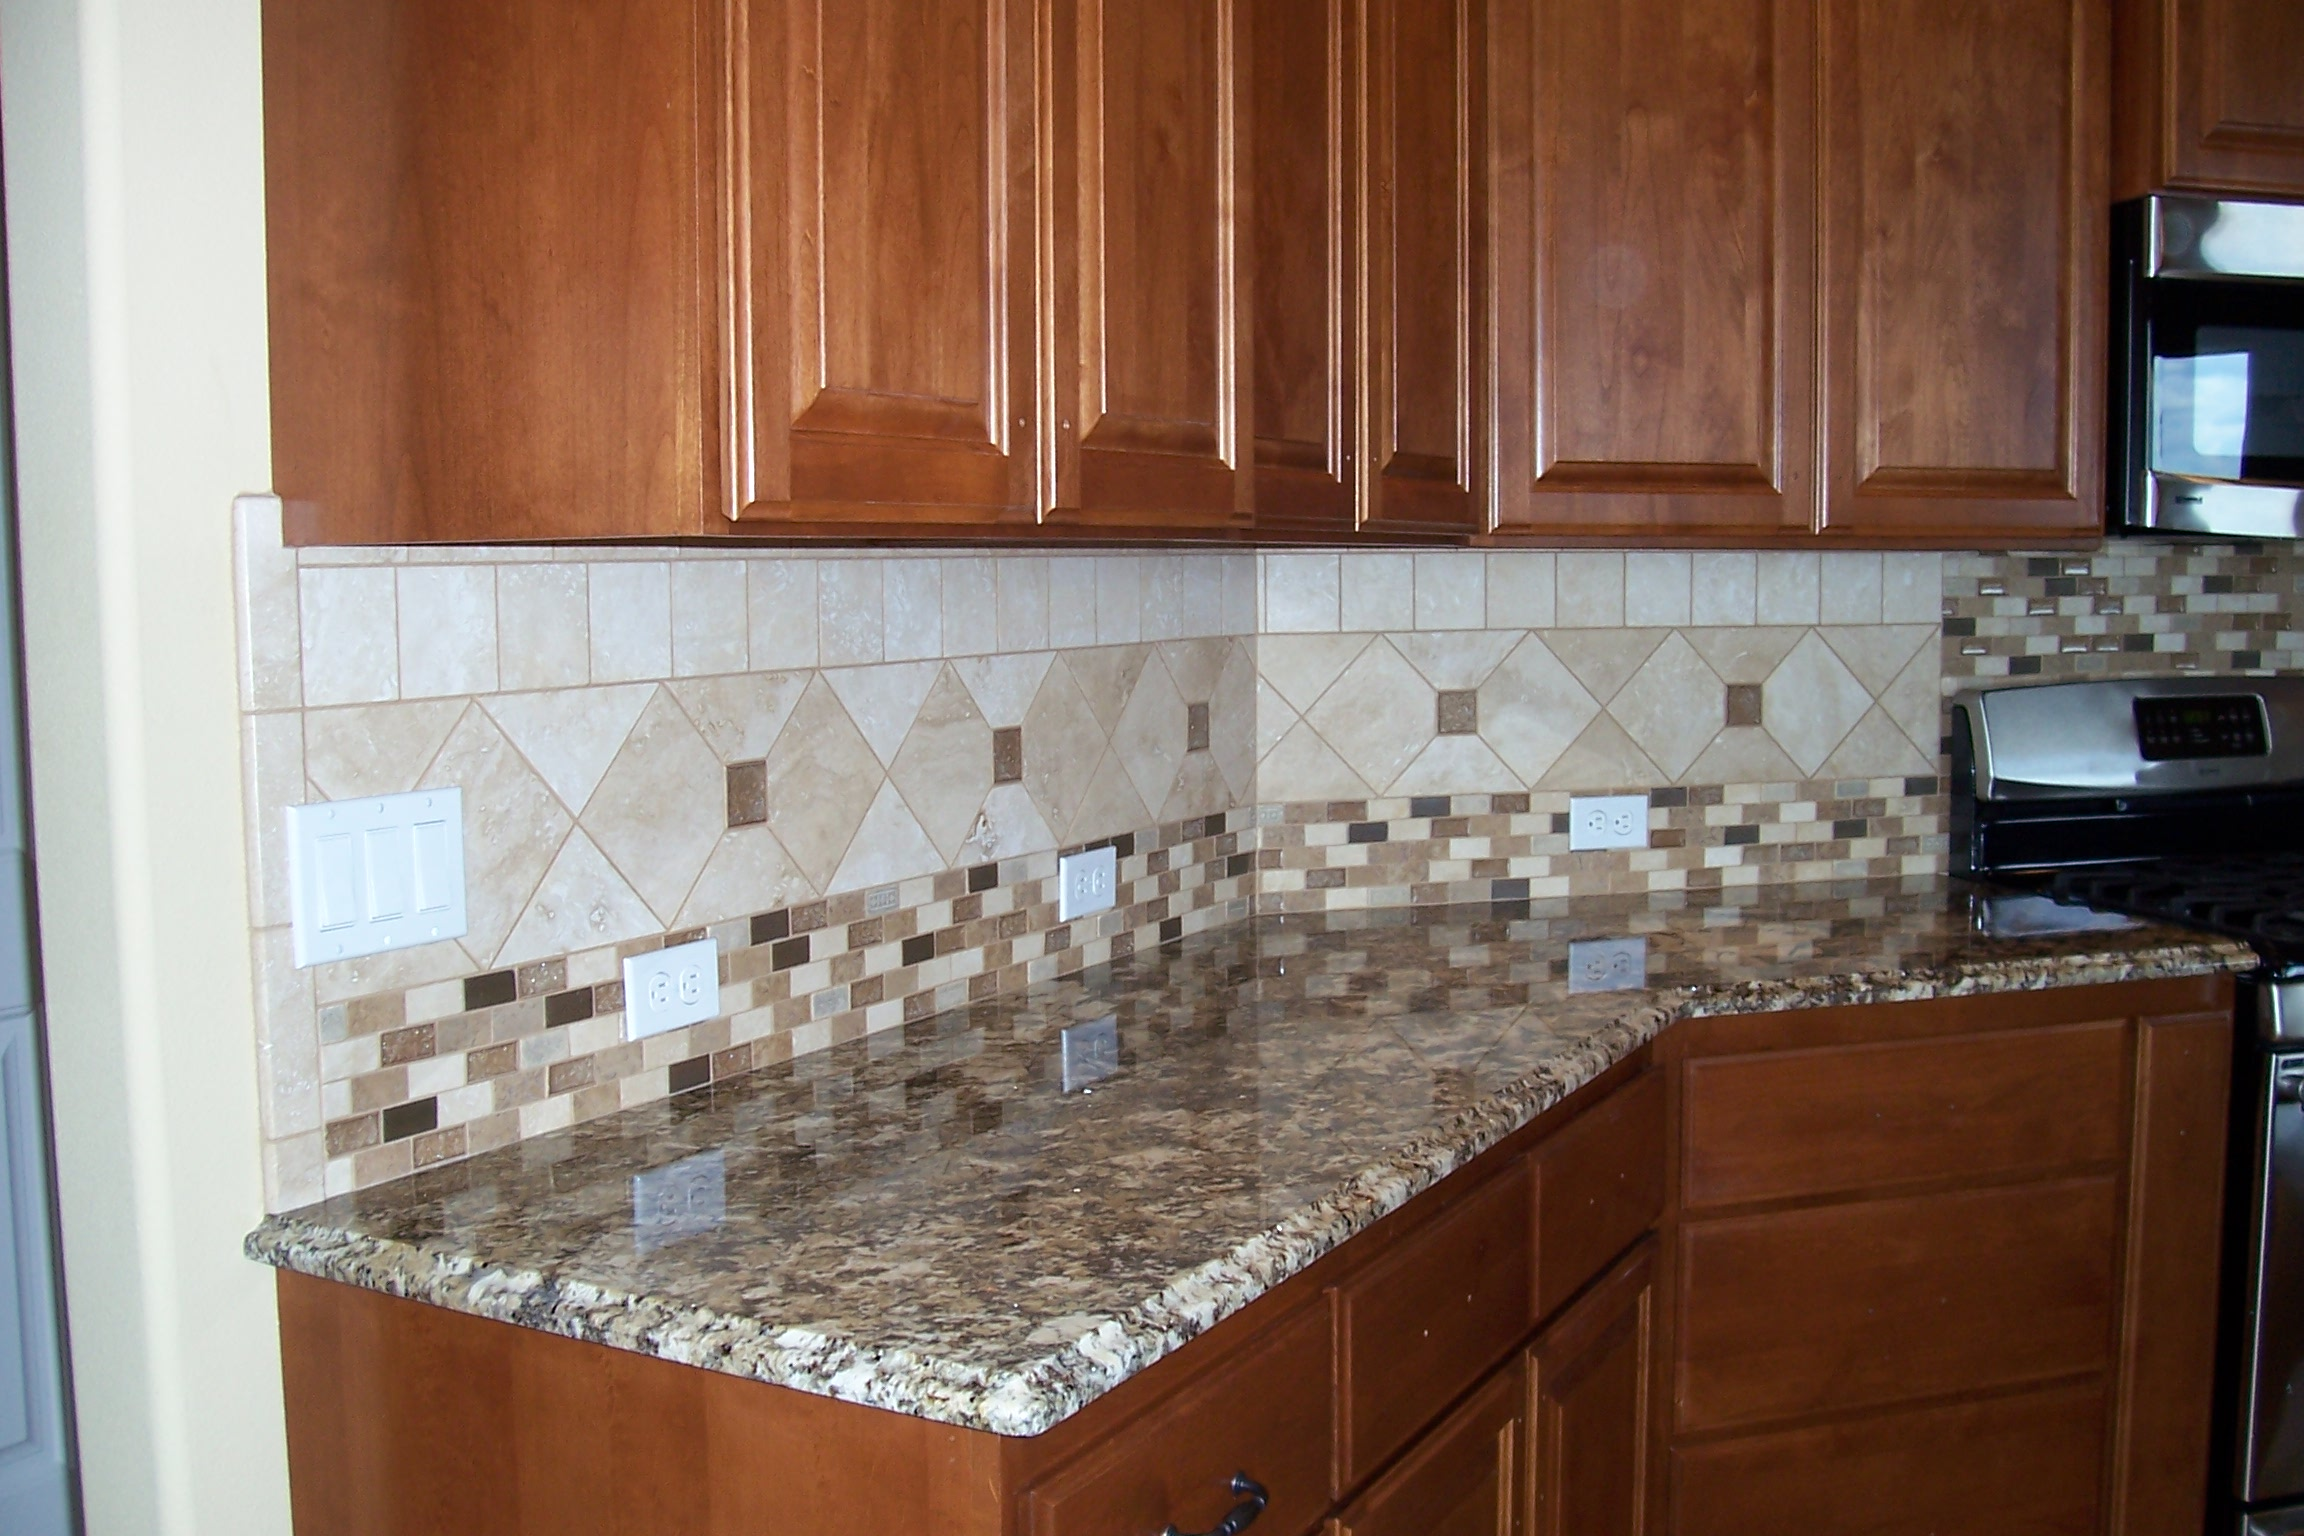 Kitchen Design And Backsplash 301 Moved Permanently